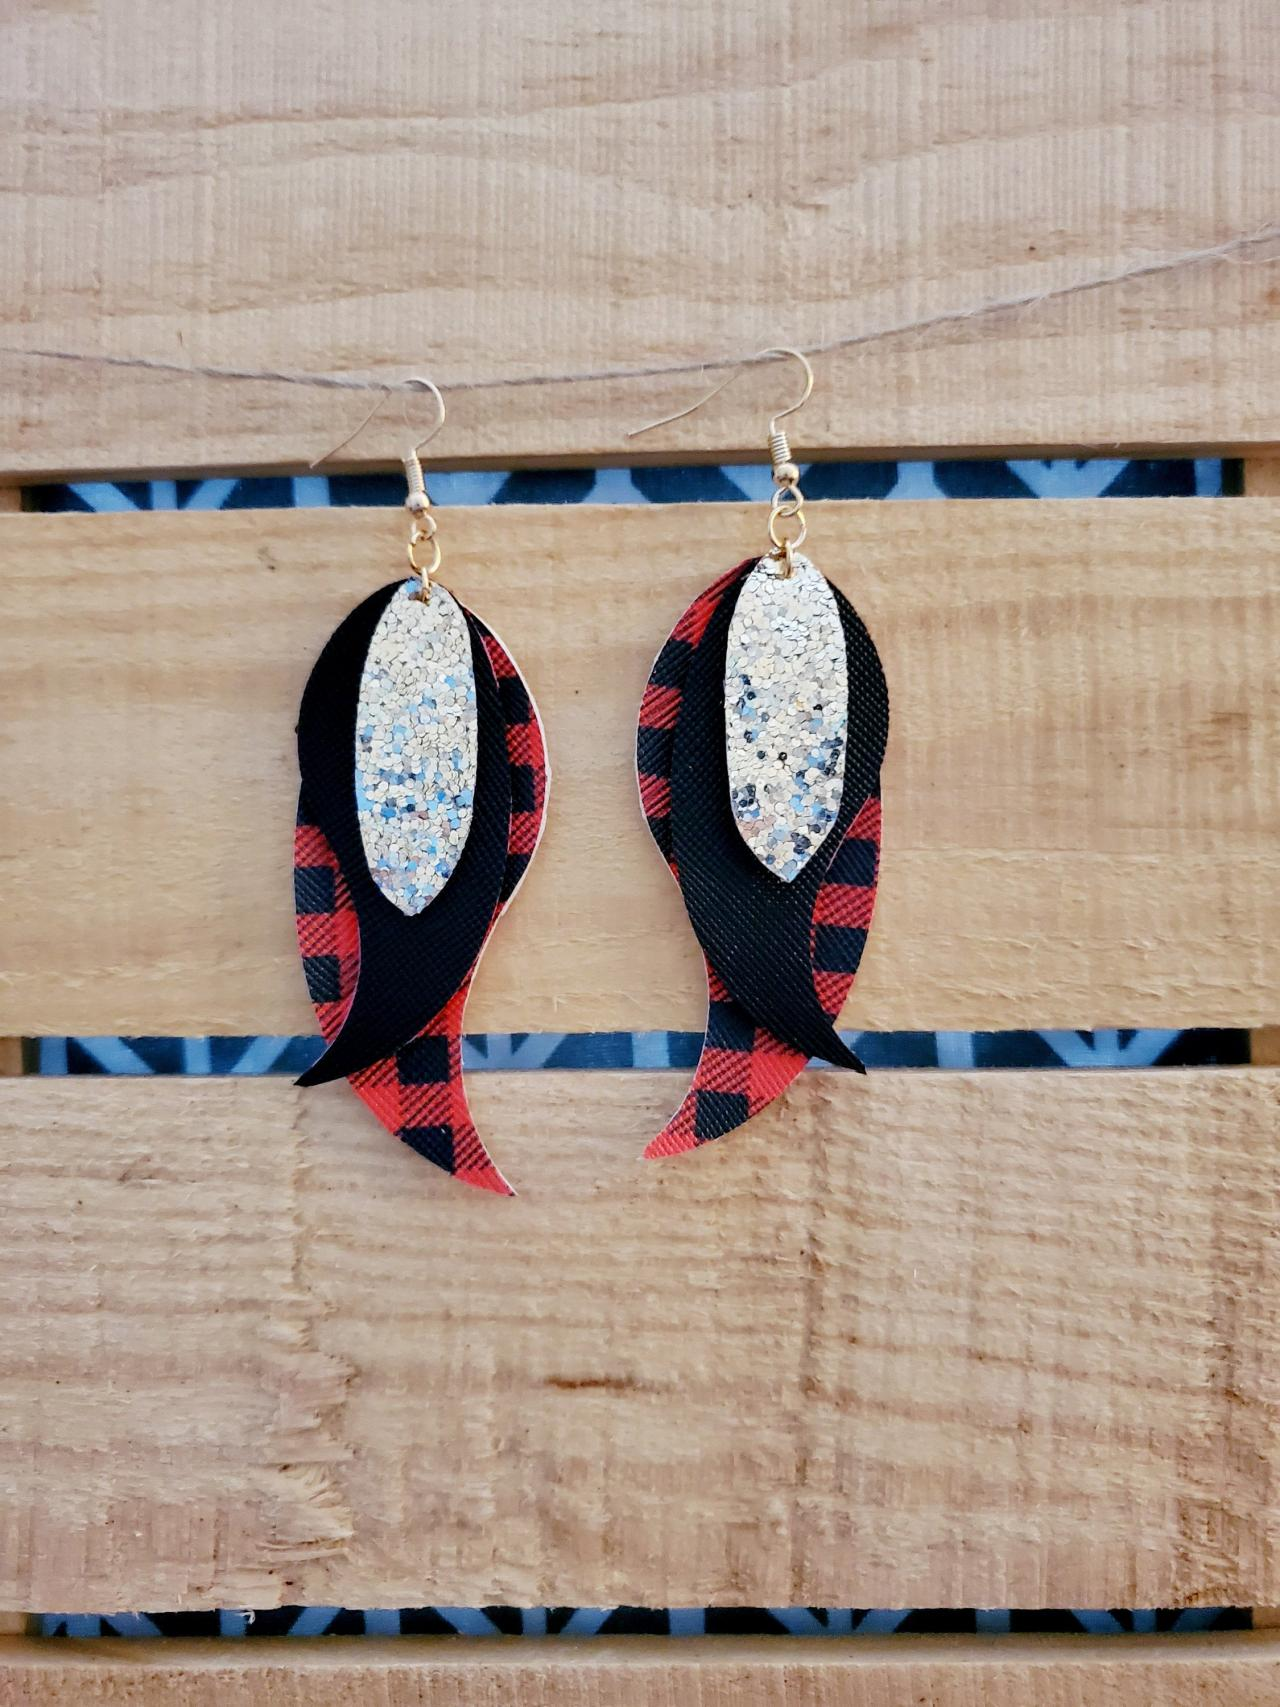 Buffalo Plaid Feather Earrings, Triple Layer Jewelry, Sparkly Earrings, Everyday Wear Earrings, Red Black Leather Earrings, Gold Glitter